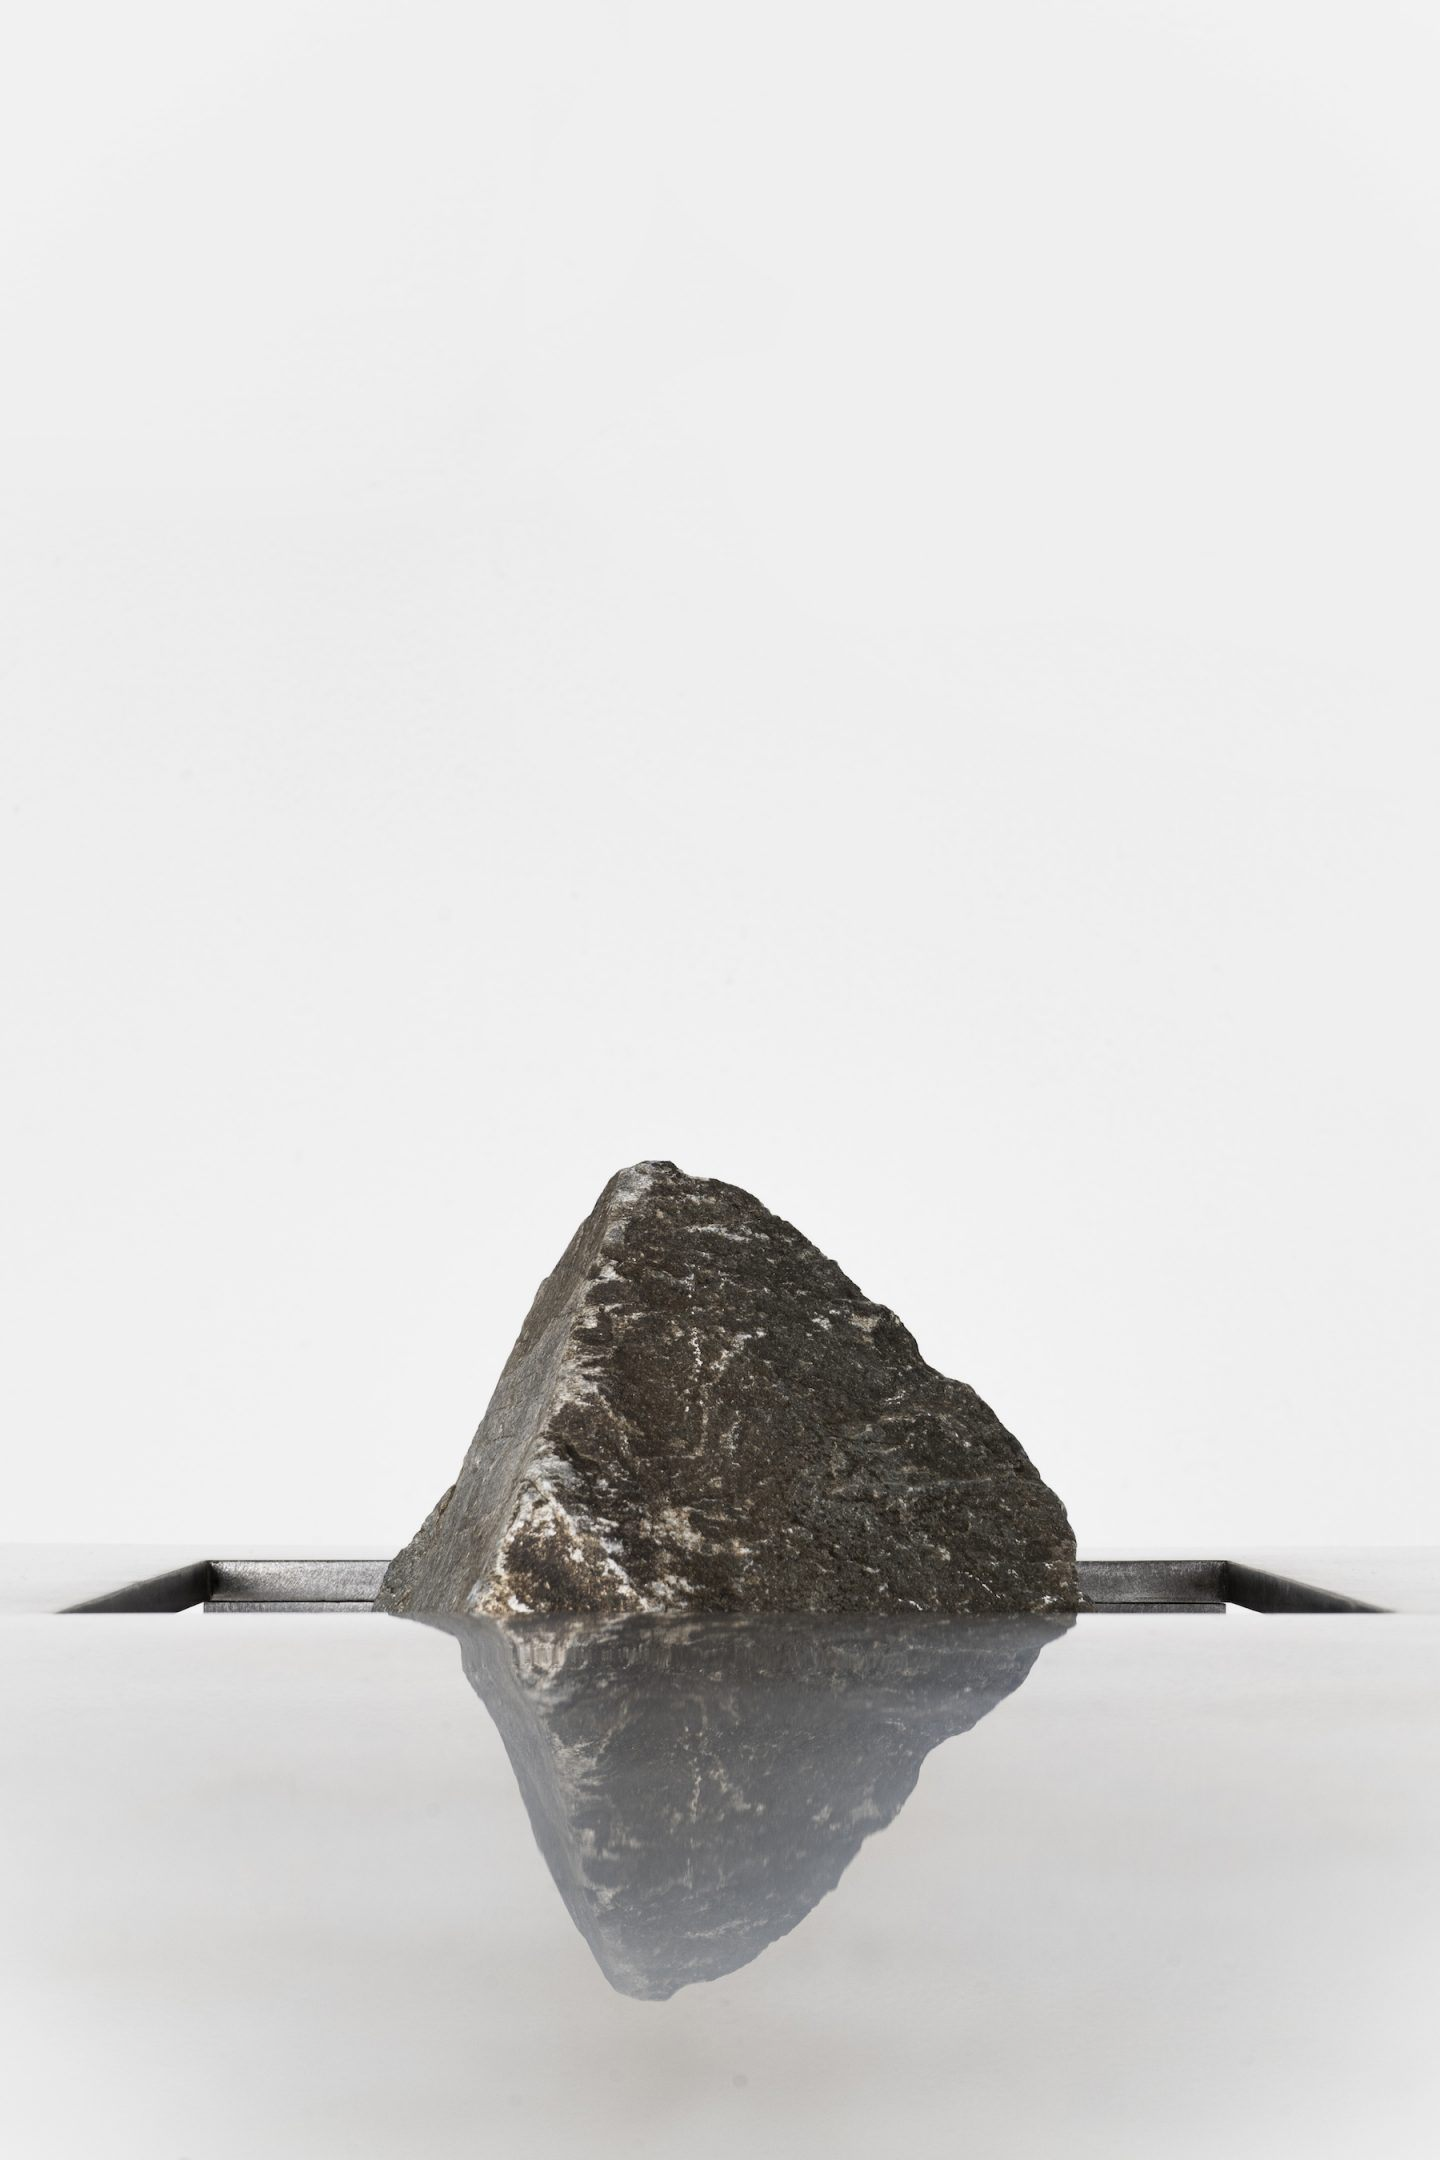 IGNANT-Design-Sisan-Lee-Proportions-Of-Stone-11